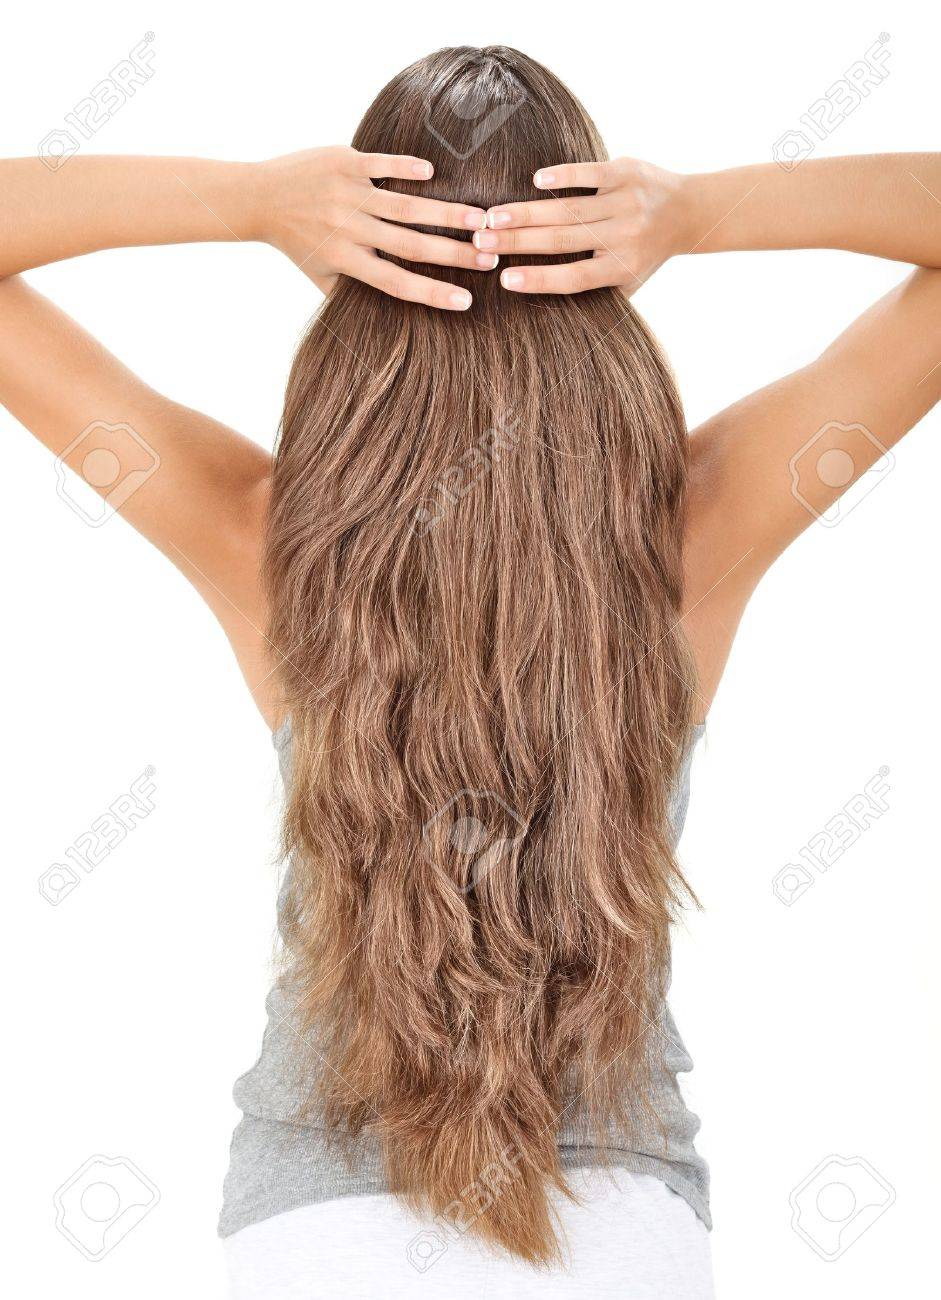 Brunette lady holding long hairs, view from back side isolated on white Stock Photo - 7907764